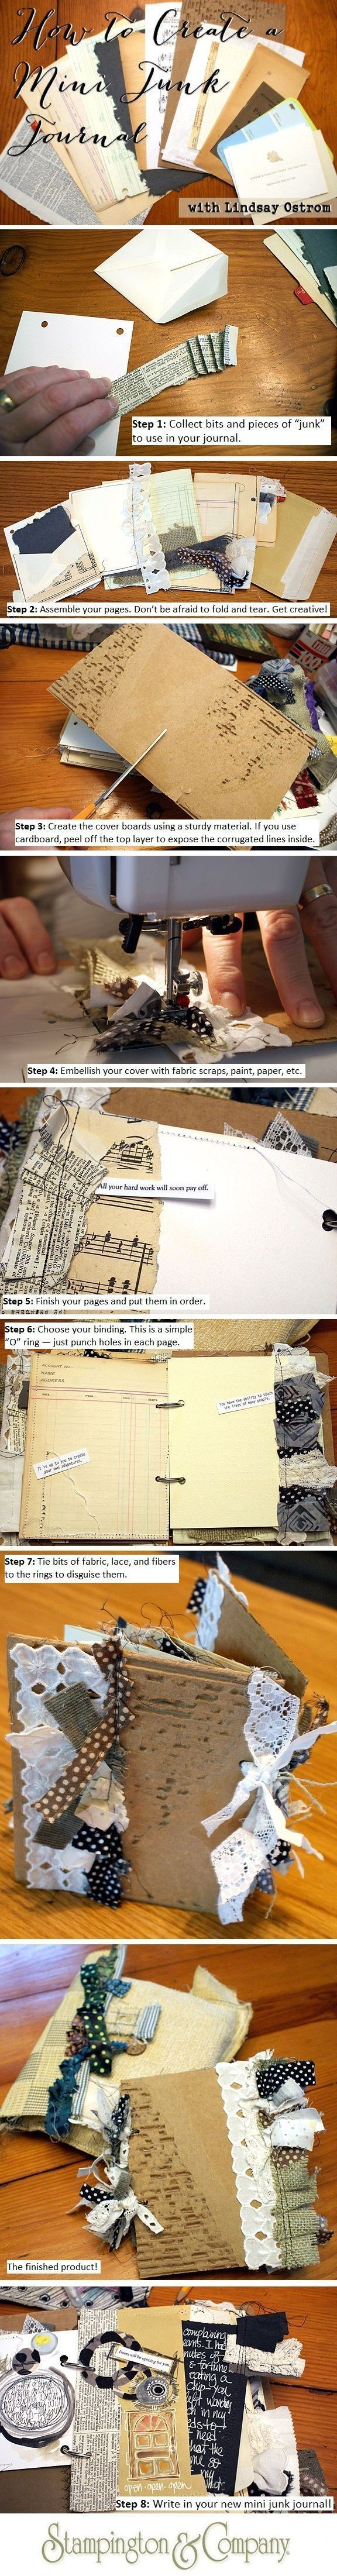 Join guest artist @lindsayostrom [On the Blog] to learn how to create a mini junk journal! Click the pic for Lindsay's step-by-step DIY tutorial.